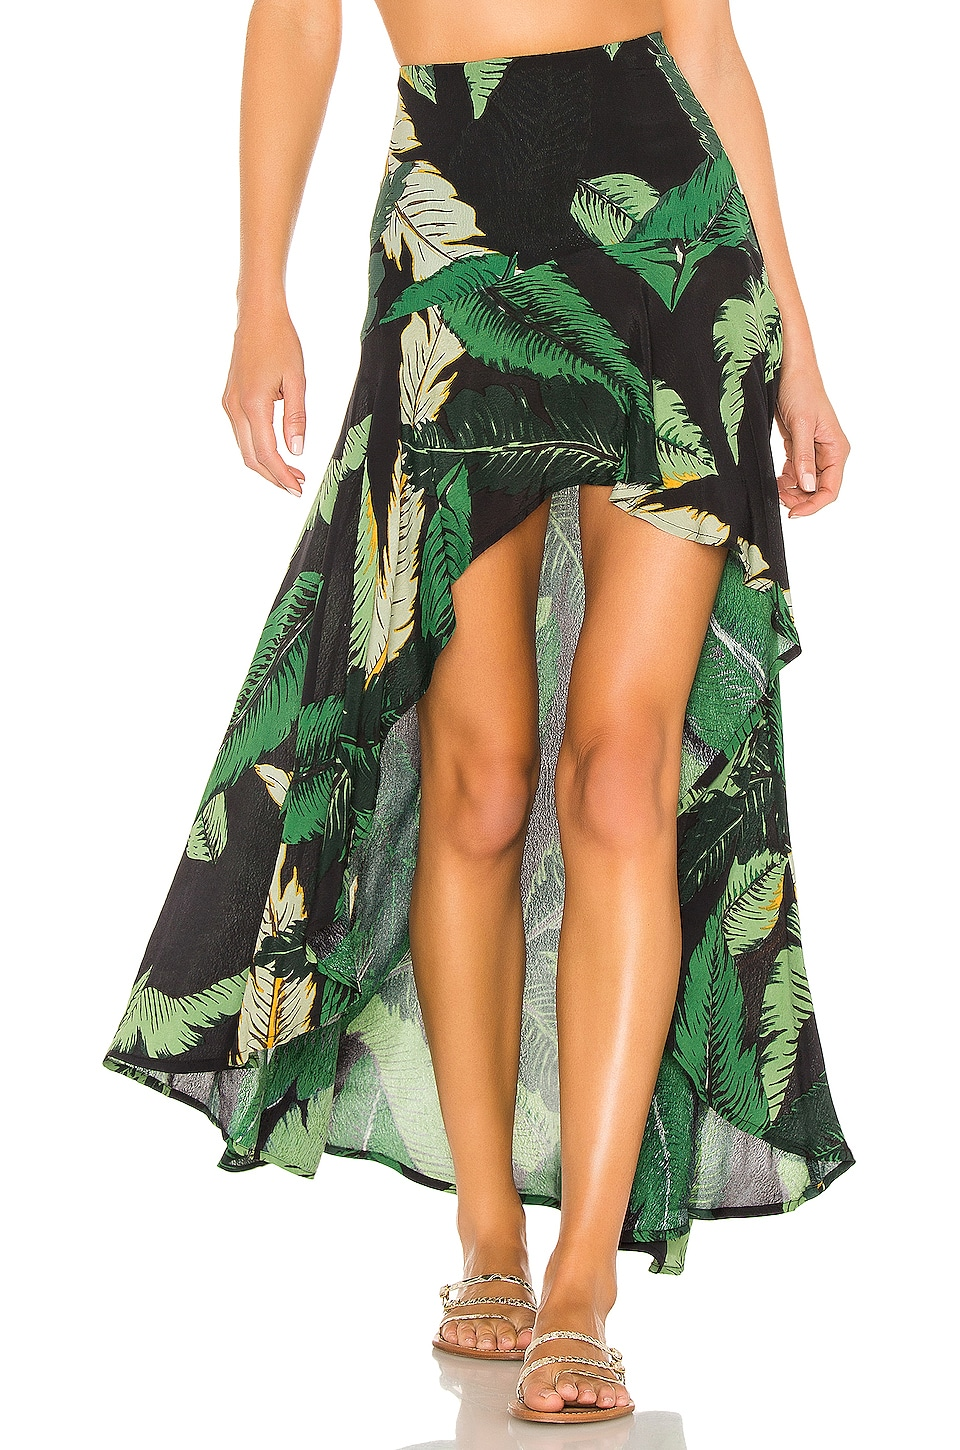 BEACH RIOT Rachel Skirt in Black Palm